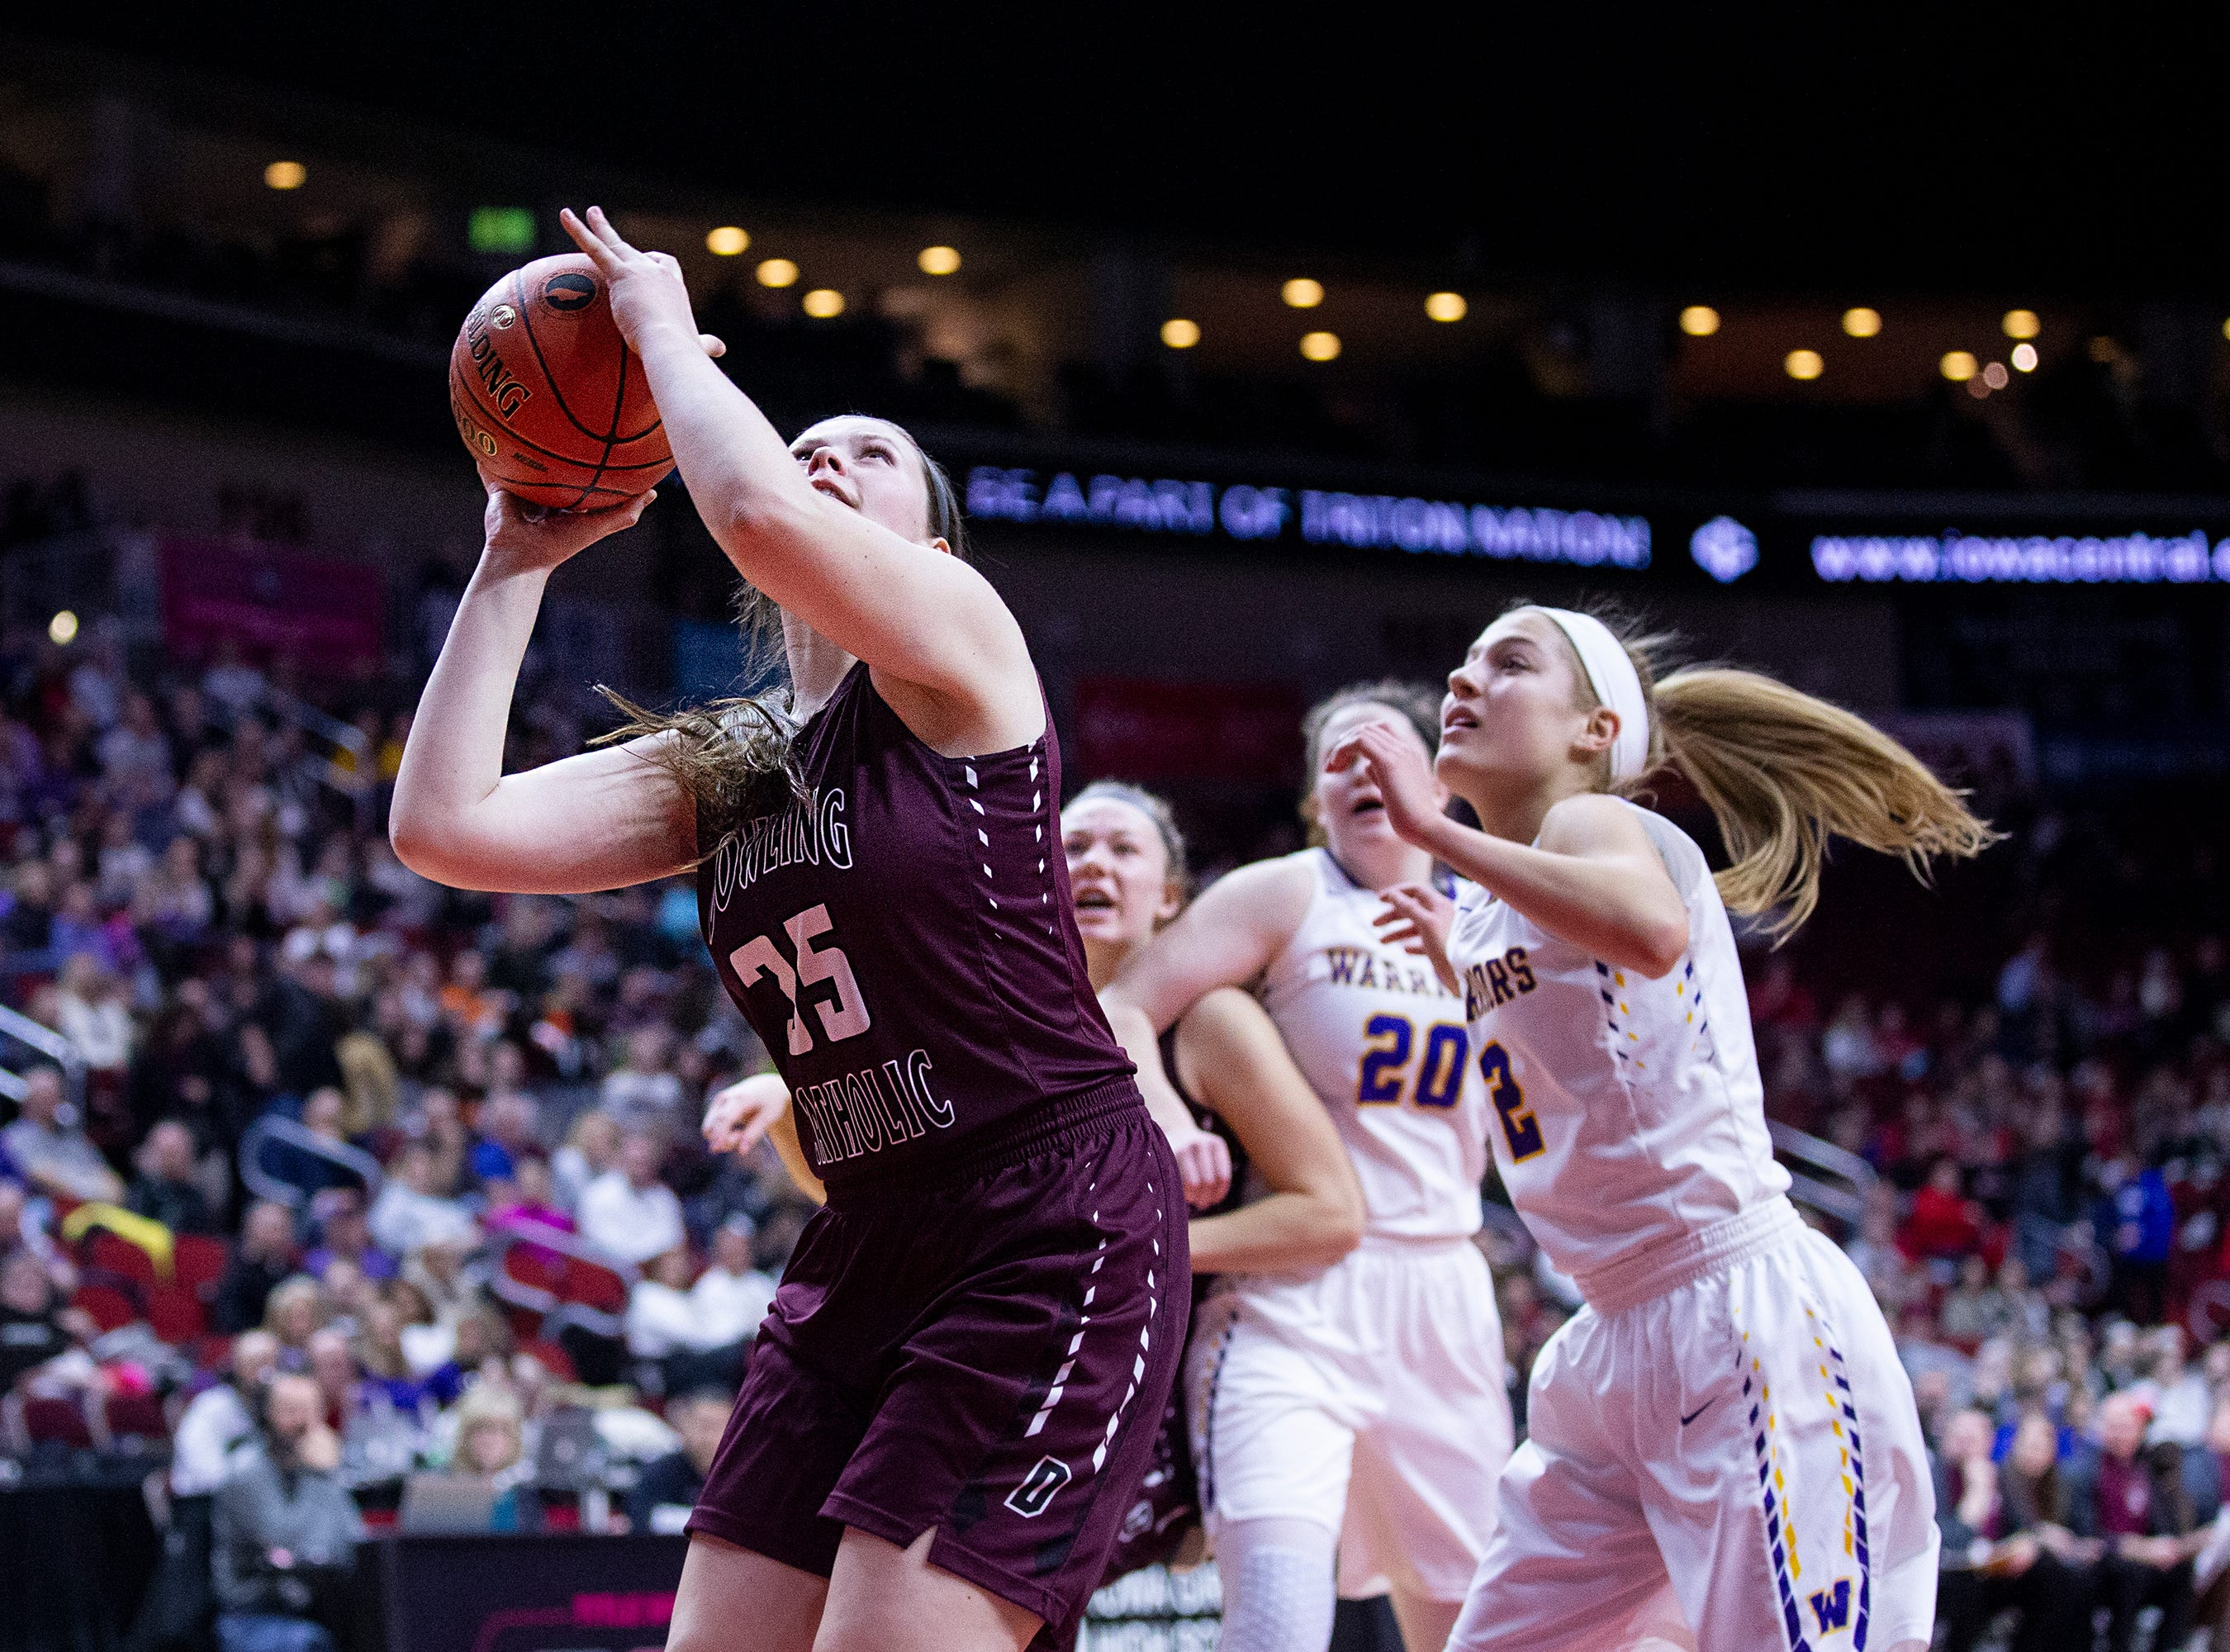 Dowling's Jacey Koethe shoots the ball during the Class 5A Iowa girls' state basketball tournament quarterfinal between Dowling Catholic and Waukee on Monday, Feb. 25, 2019, in Wells Fargo Arena.